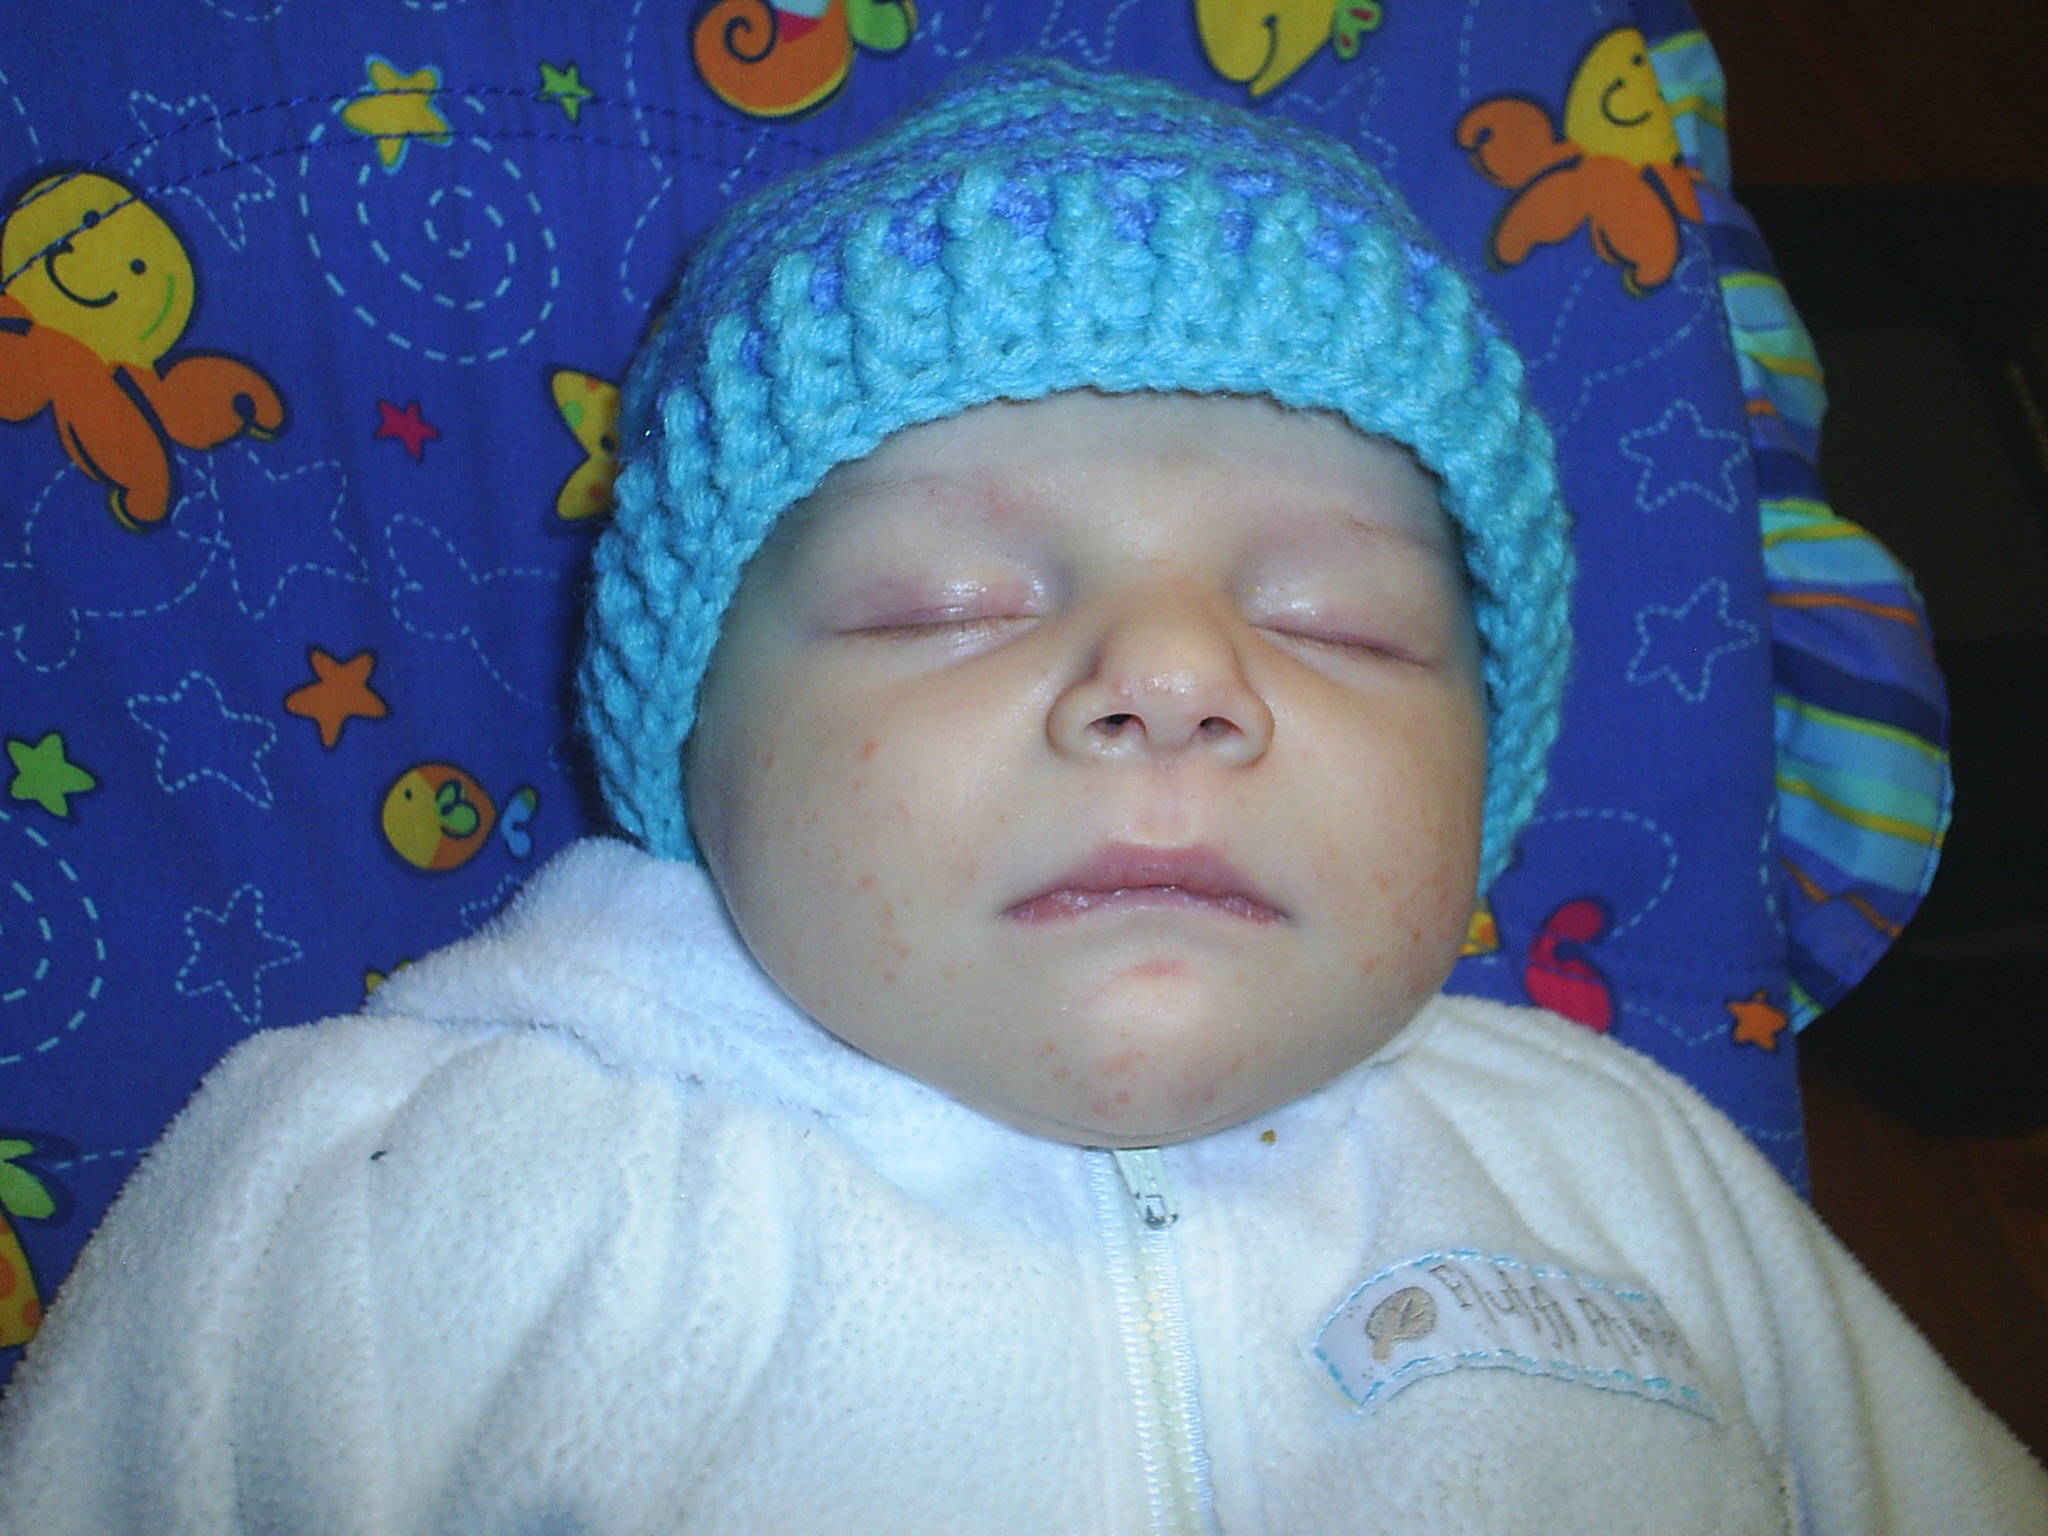 Crochet Baby Hat Pattern Instructions : Toddler Crochet Hat Pattern - Modern Homemakers